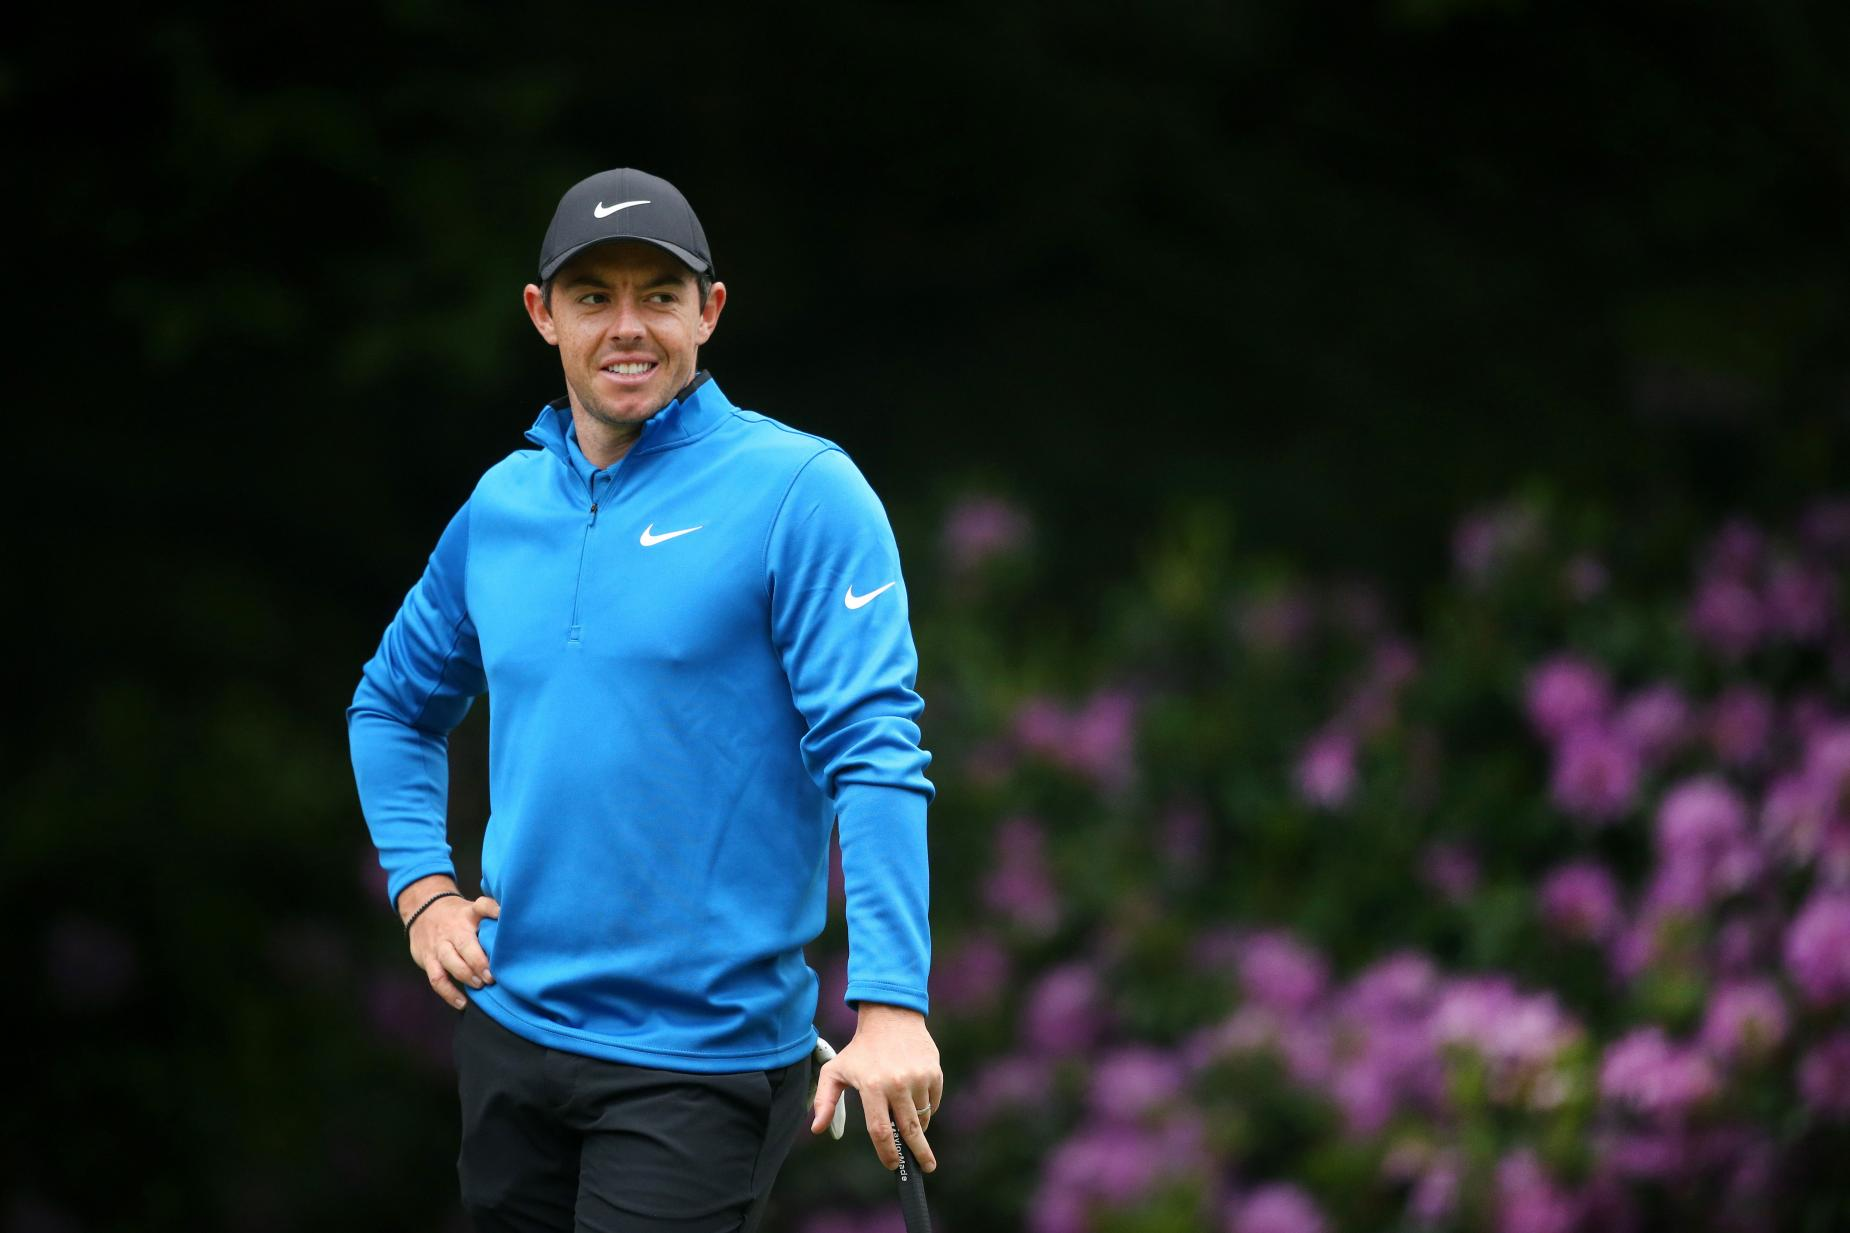 rory-mcilroy-bmw-pga-2018-thursday-smiling.jpg